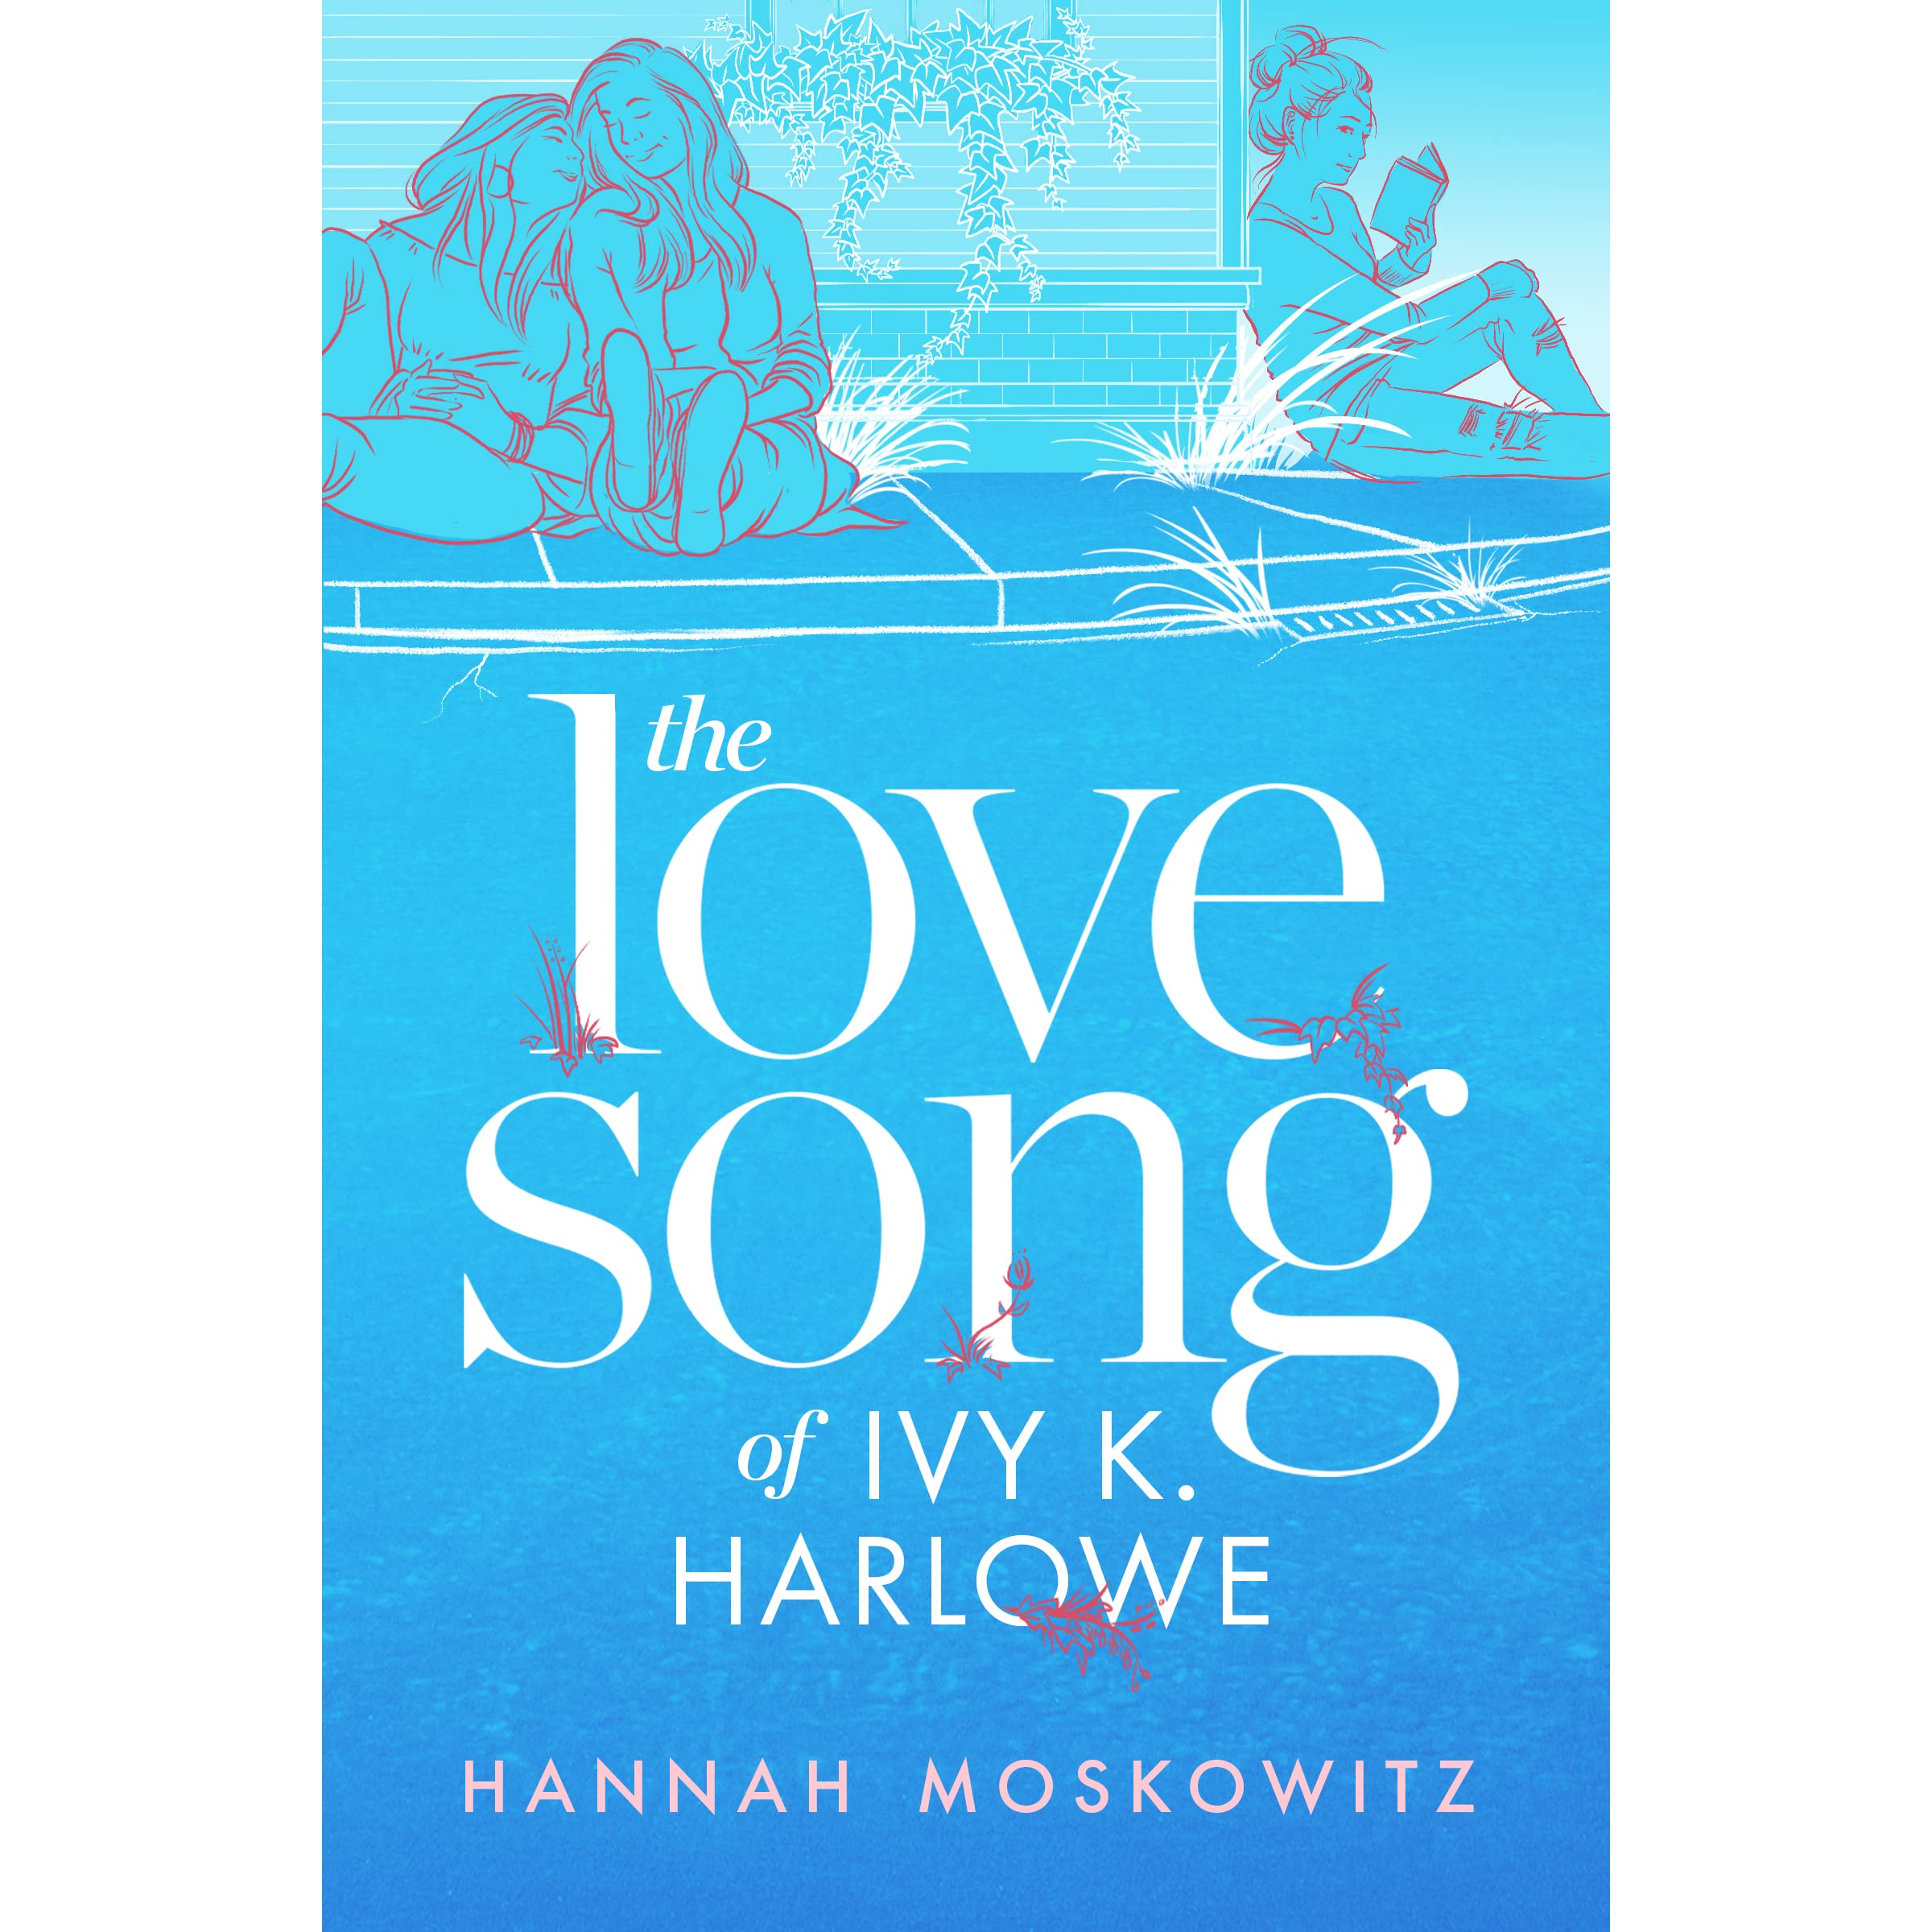 The cover of The Love Song of Ivy K. Harlowe